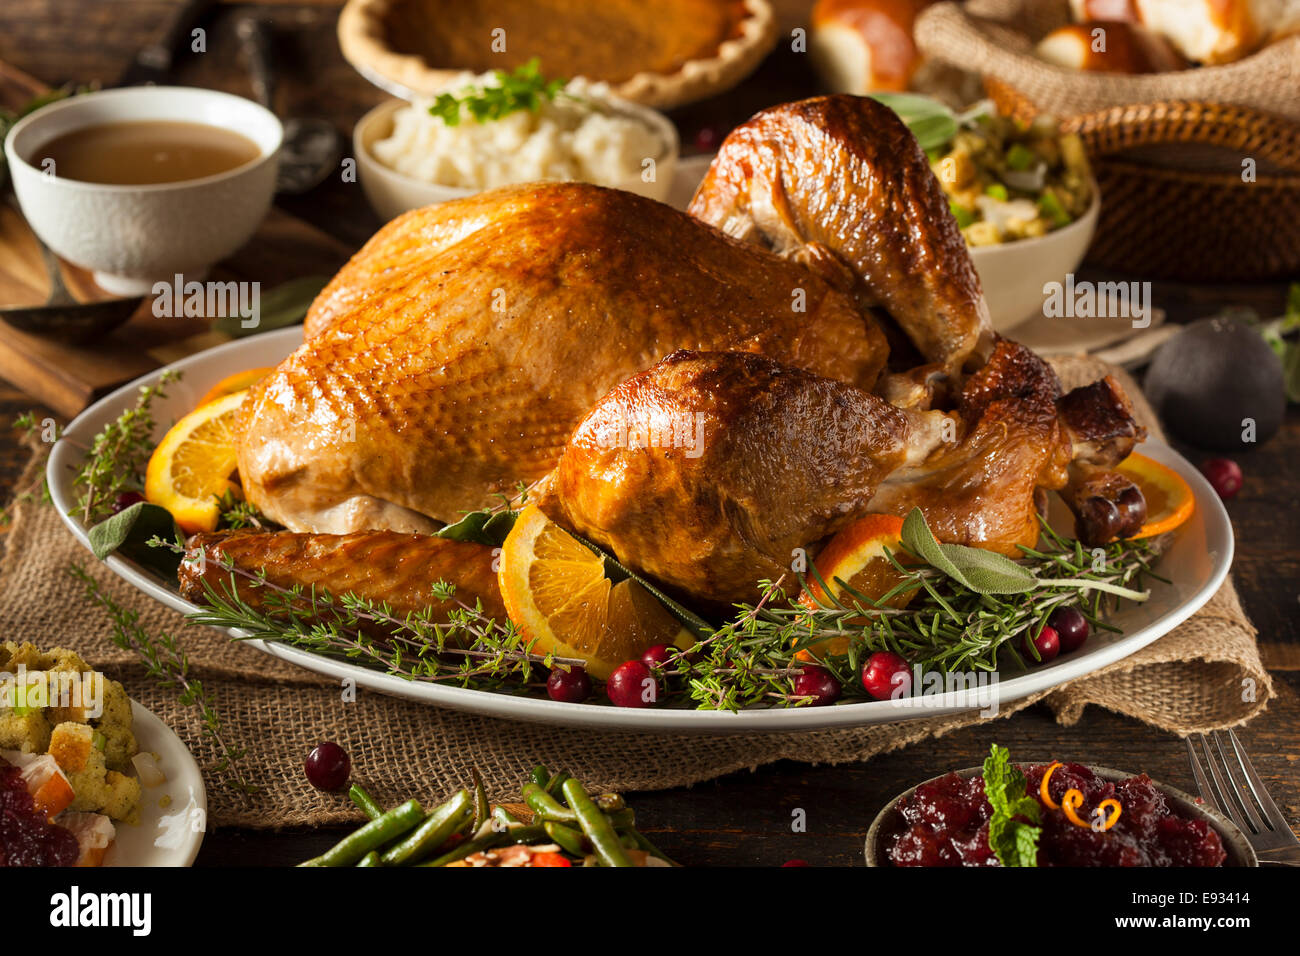 Whole Homemade Thanksgiving Turkey with All the Sides - Stock Image